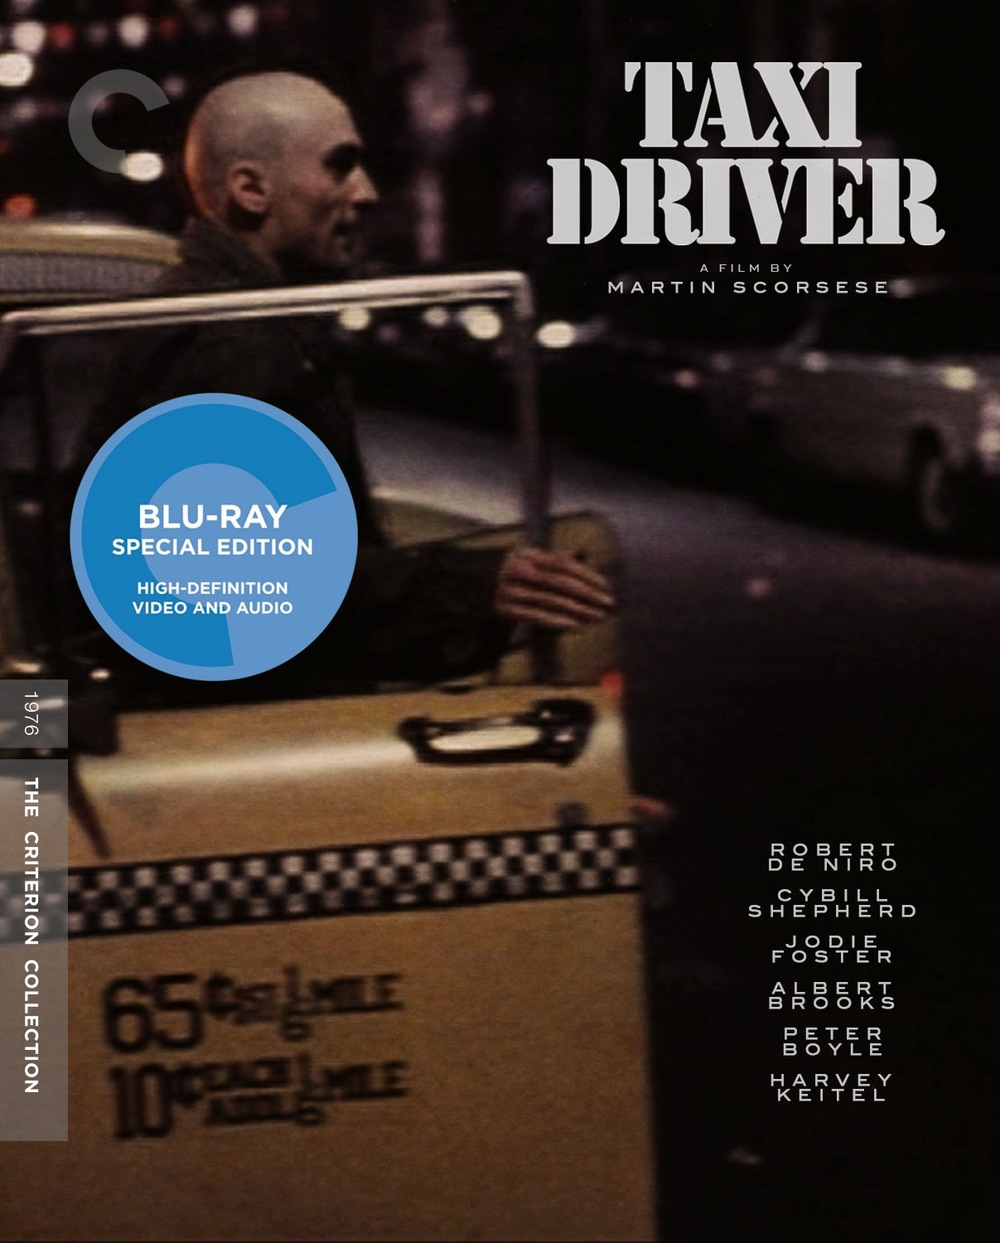 Taxi_Driver-Robert_Deniro-movie_poster-09-iznogoodgood.jpeg